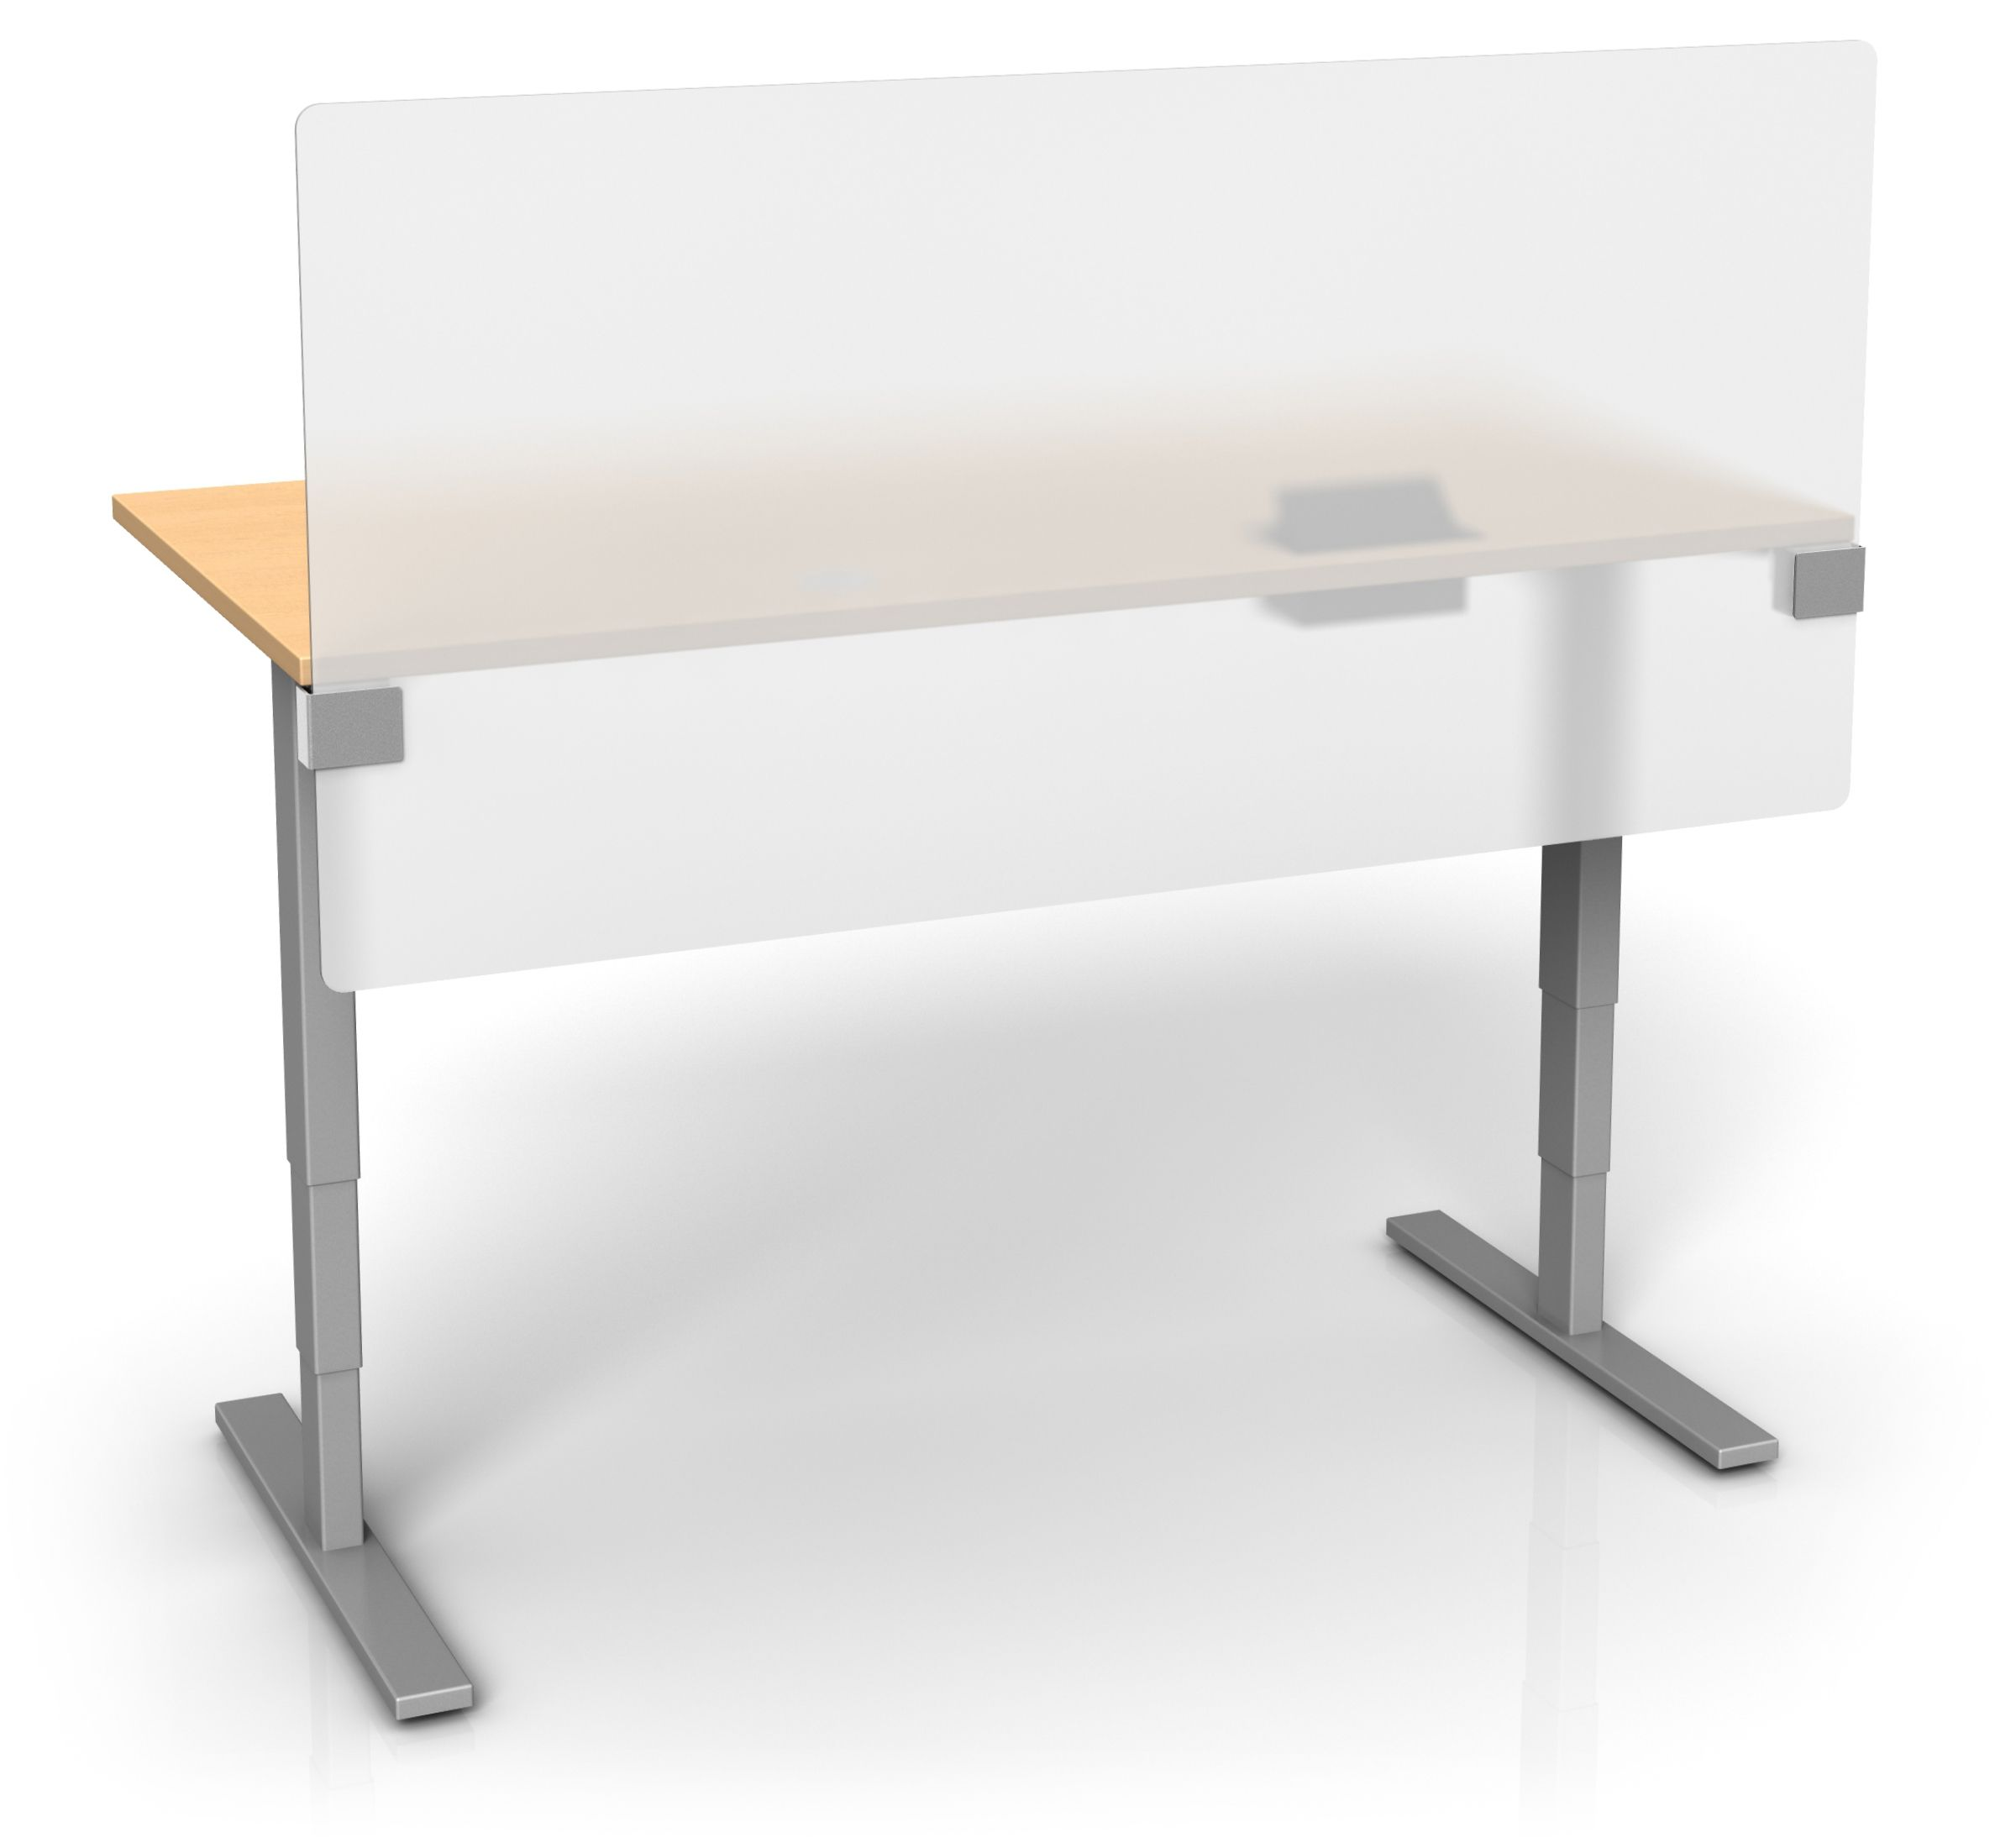 Design Acrylic Desks height adjustable desk divider in frosted acrylic by merge works works